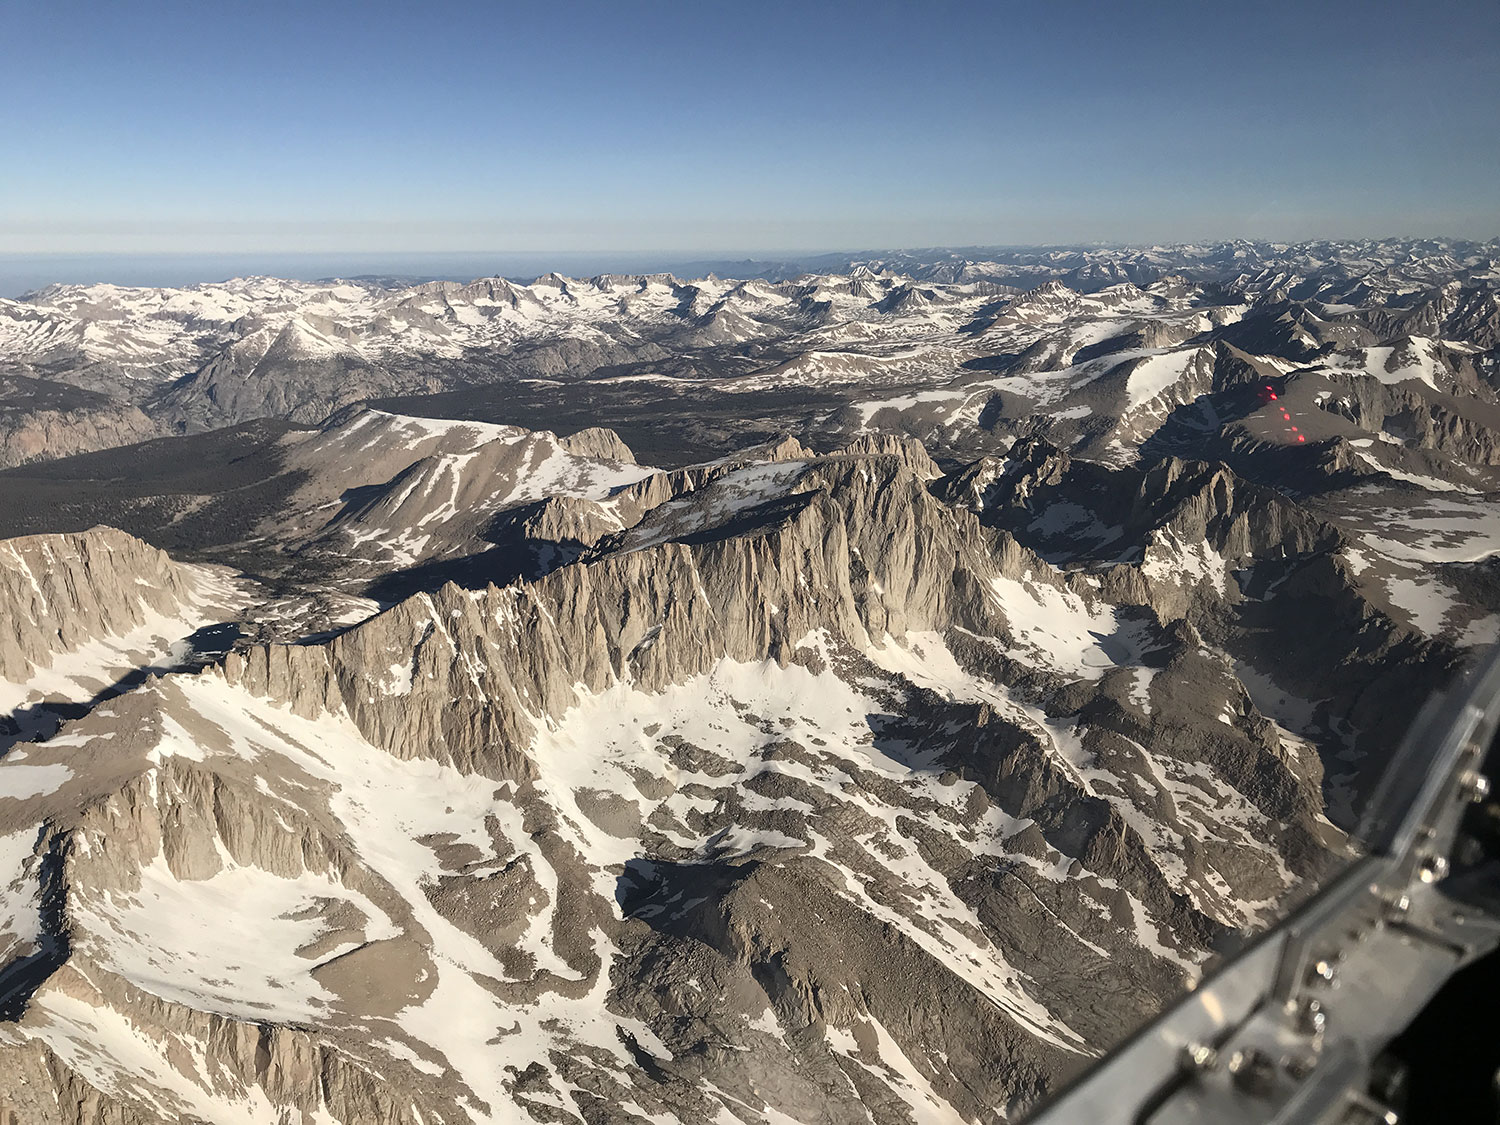 Mount Whitney is something I usually see from below, or at beast, from alongside. Its kinda fun looking down on the tallest peak in the continental US for a change.